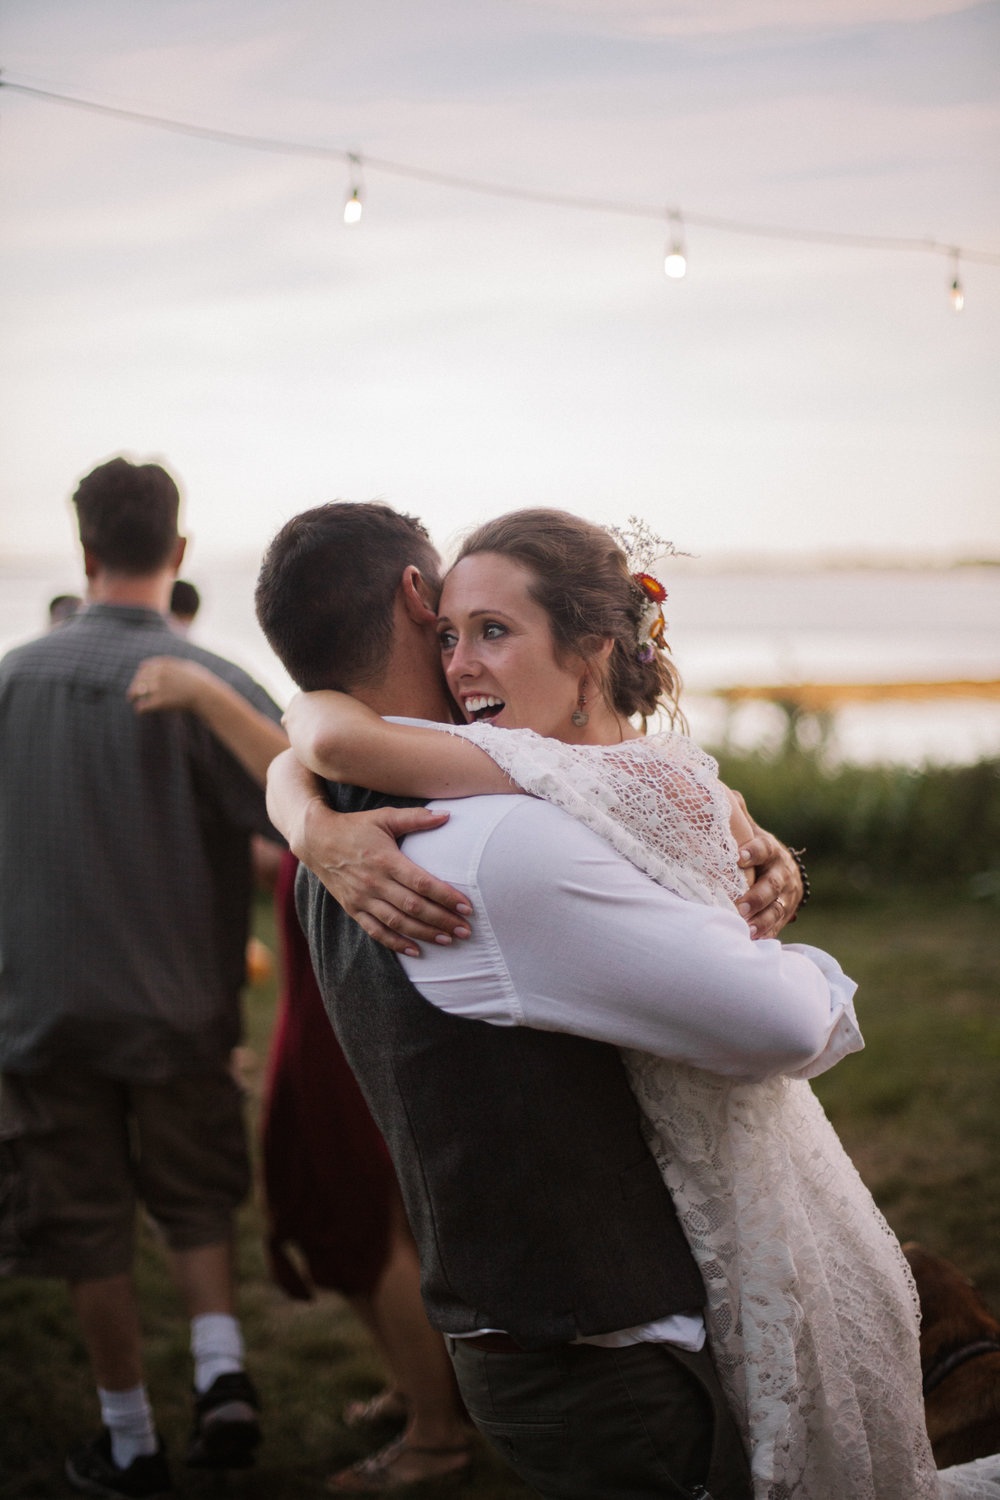 Damian and Jesse Chebeague Island Maine Backyard Destination Beach Wedding White Sails Creative_14.JPG